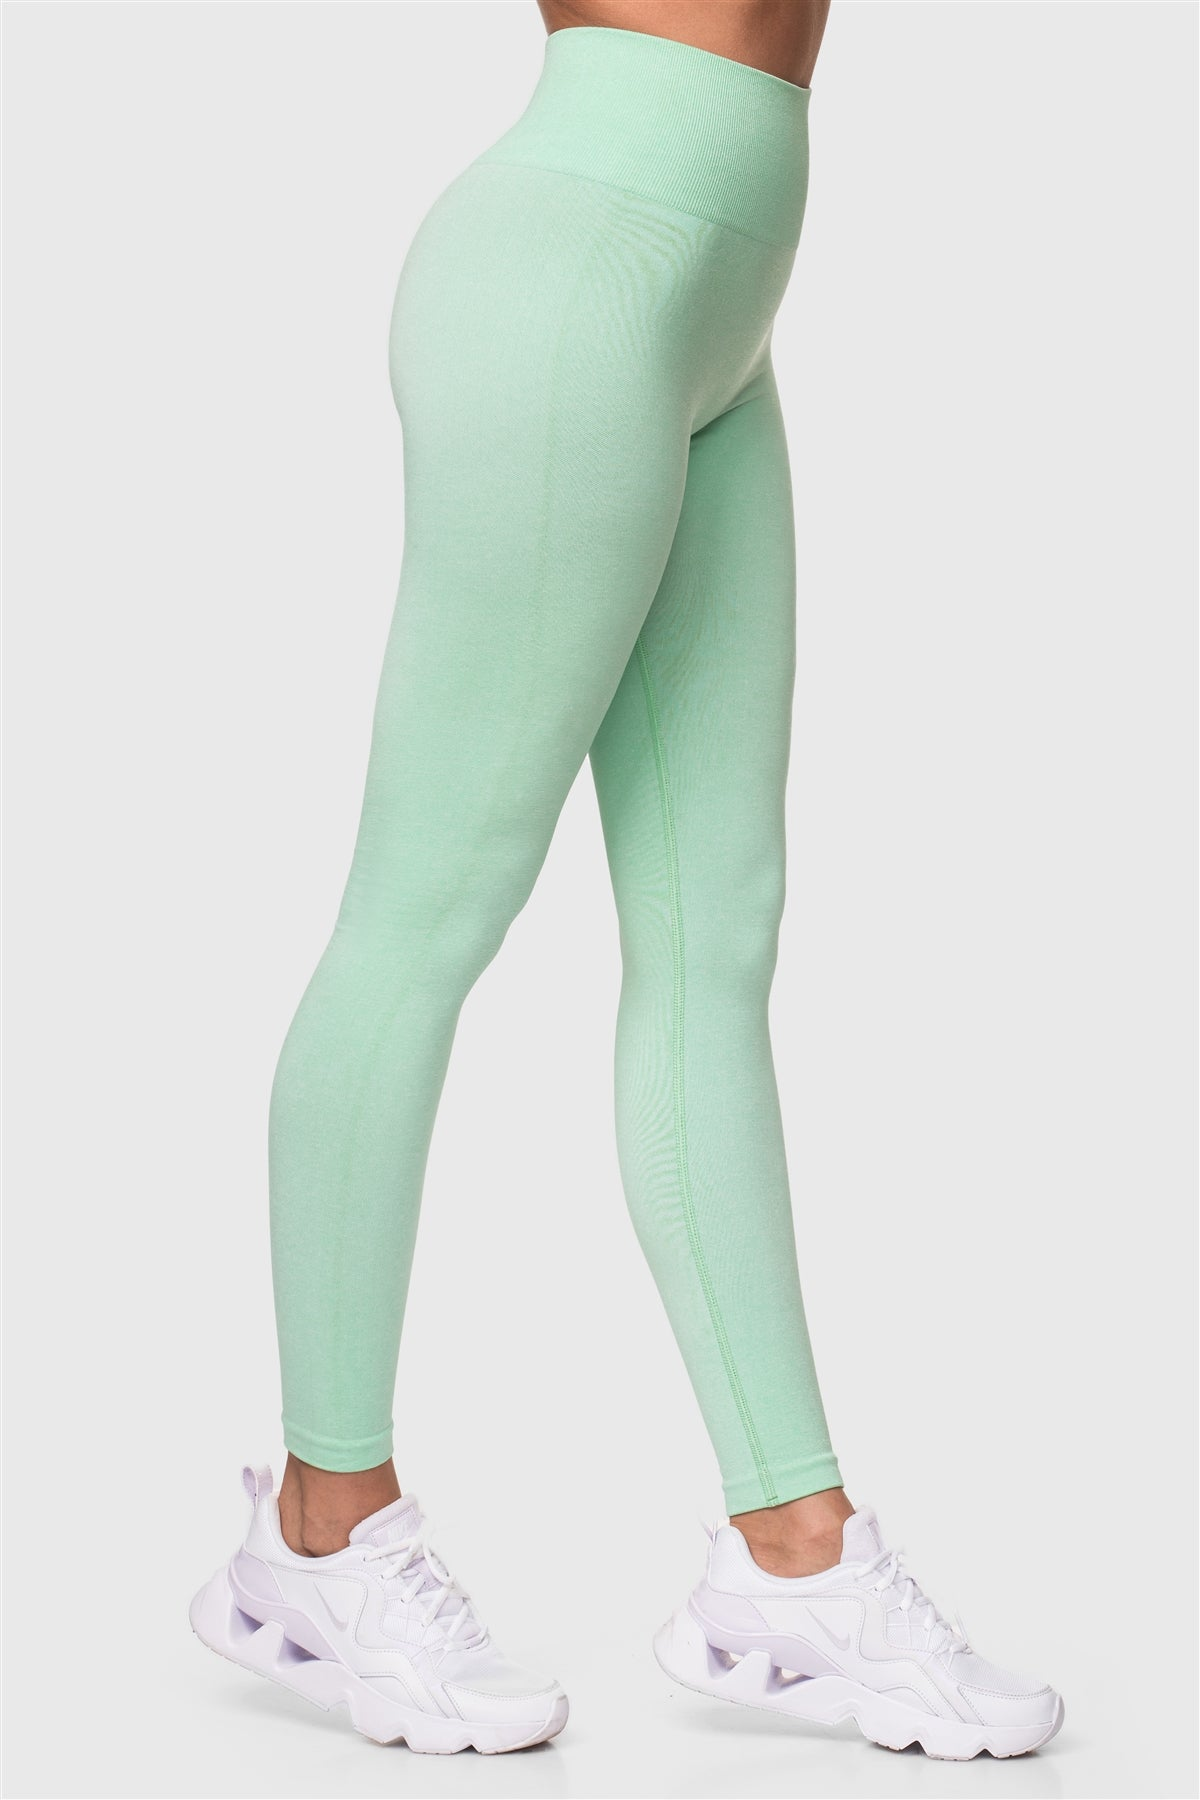 Elle Mint Seamless Leggings